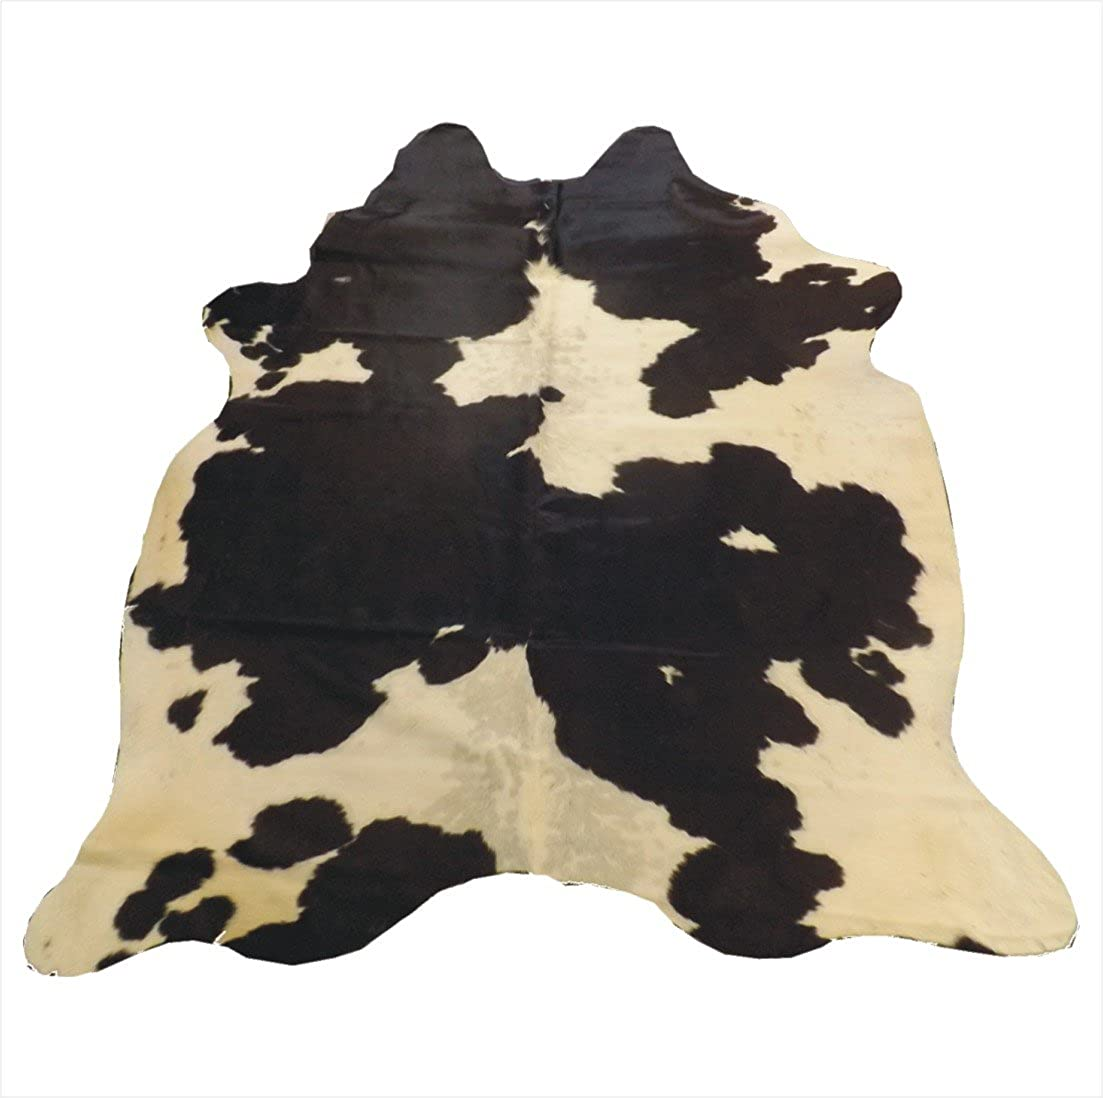 Hilason Hair-On Leather Pure Brazillian Cowhide Skin Rug Carpet Black And White